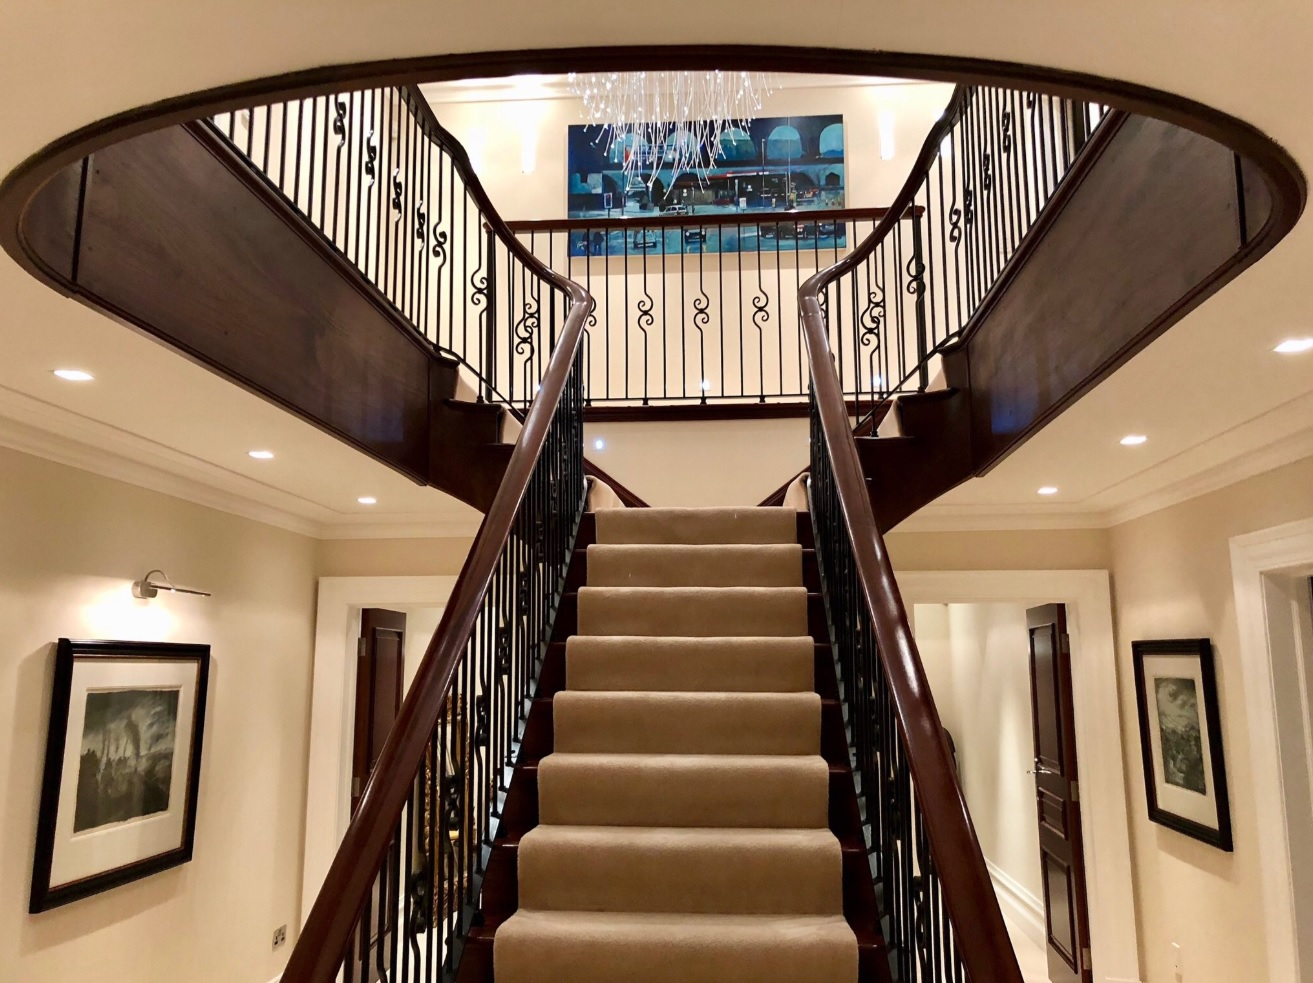 Bespoke mahogany and wrought iron staircase 1 4